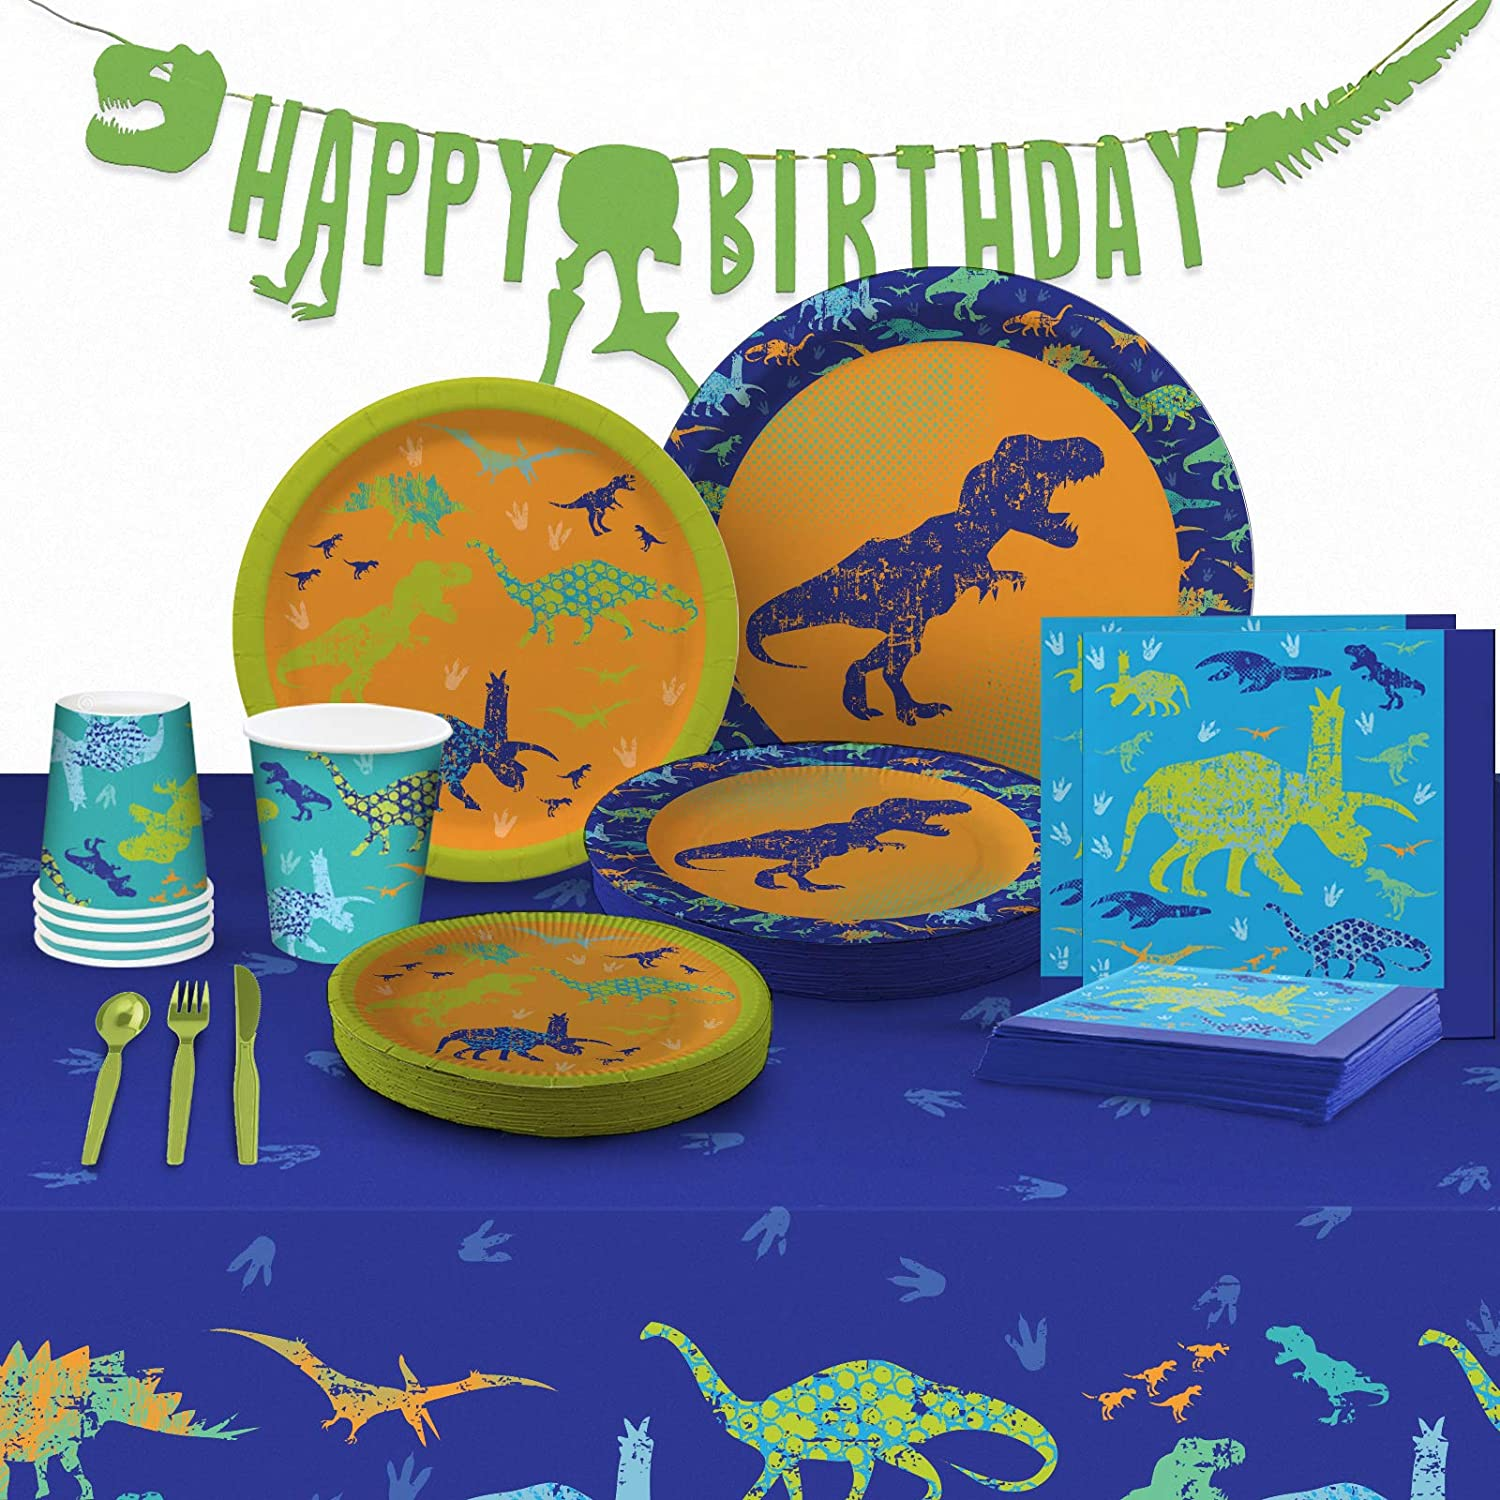 My Greca Dinosaur Party Supplies - (Serves 16) - Dinosaur Decorations Set for Birthday Party - Plates, Cups, Napkins, Happy Birthday Banner, Table Cover, Cutlery Kit - TREX Bday Theme Pack